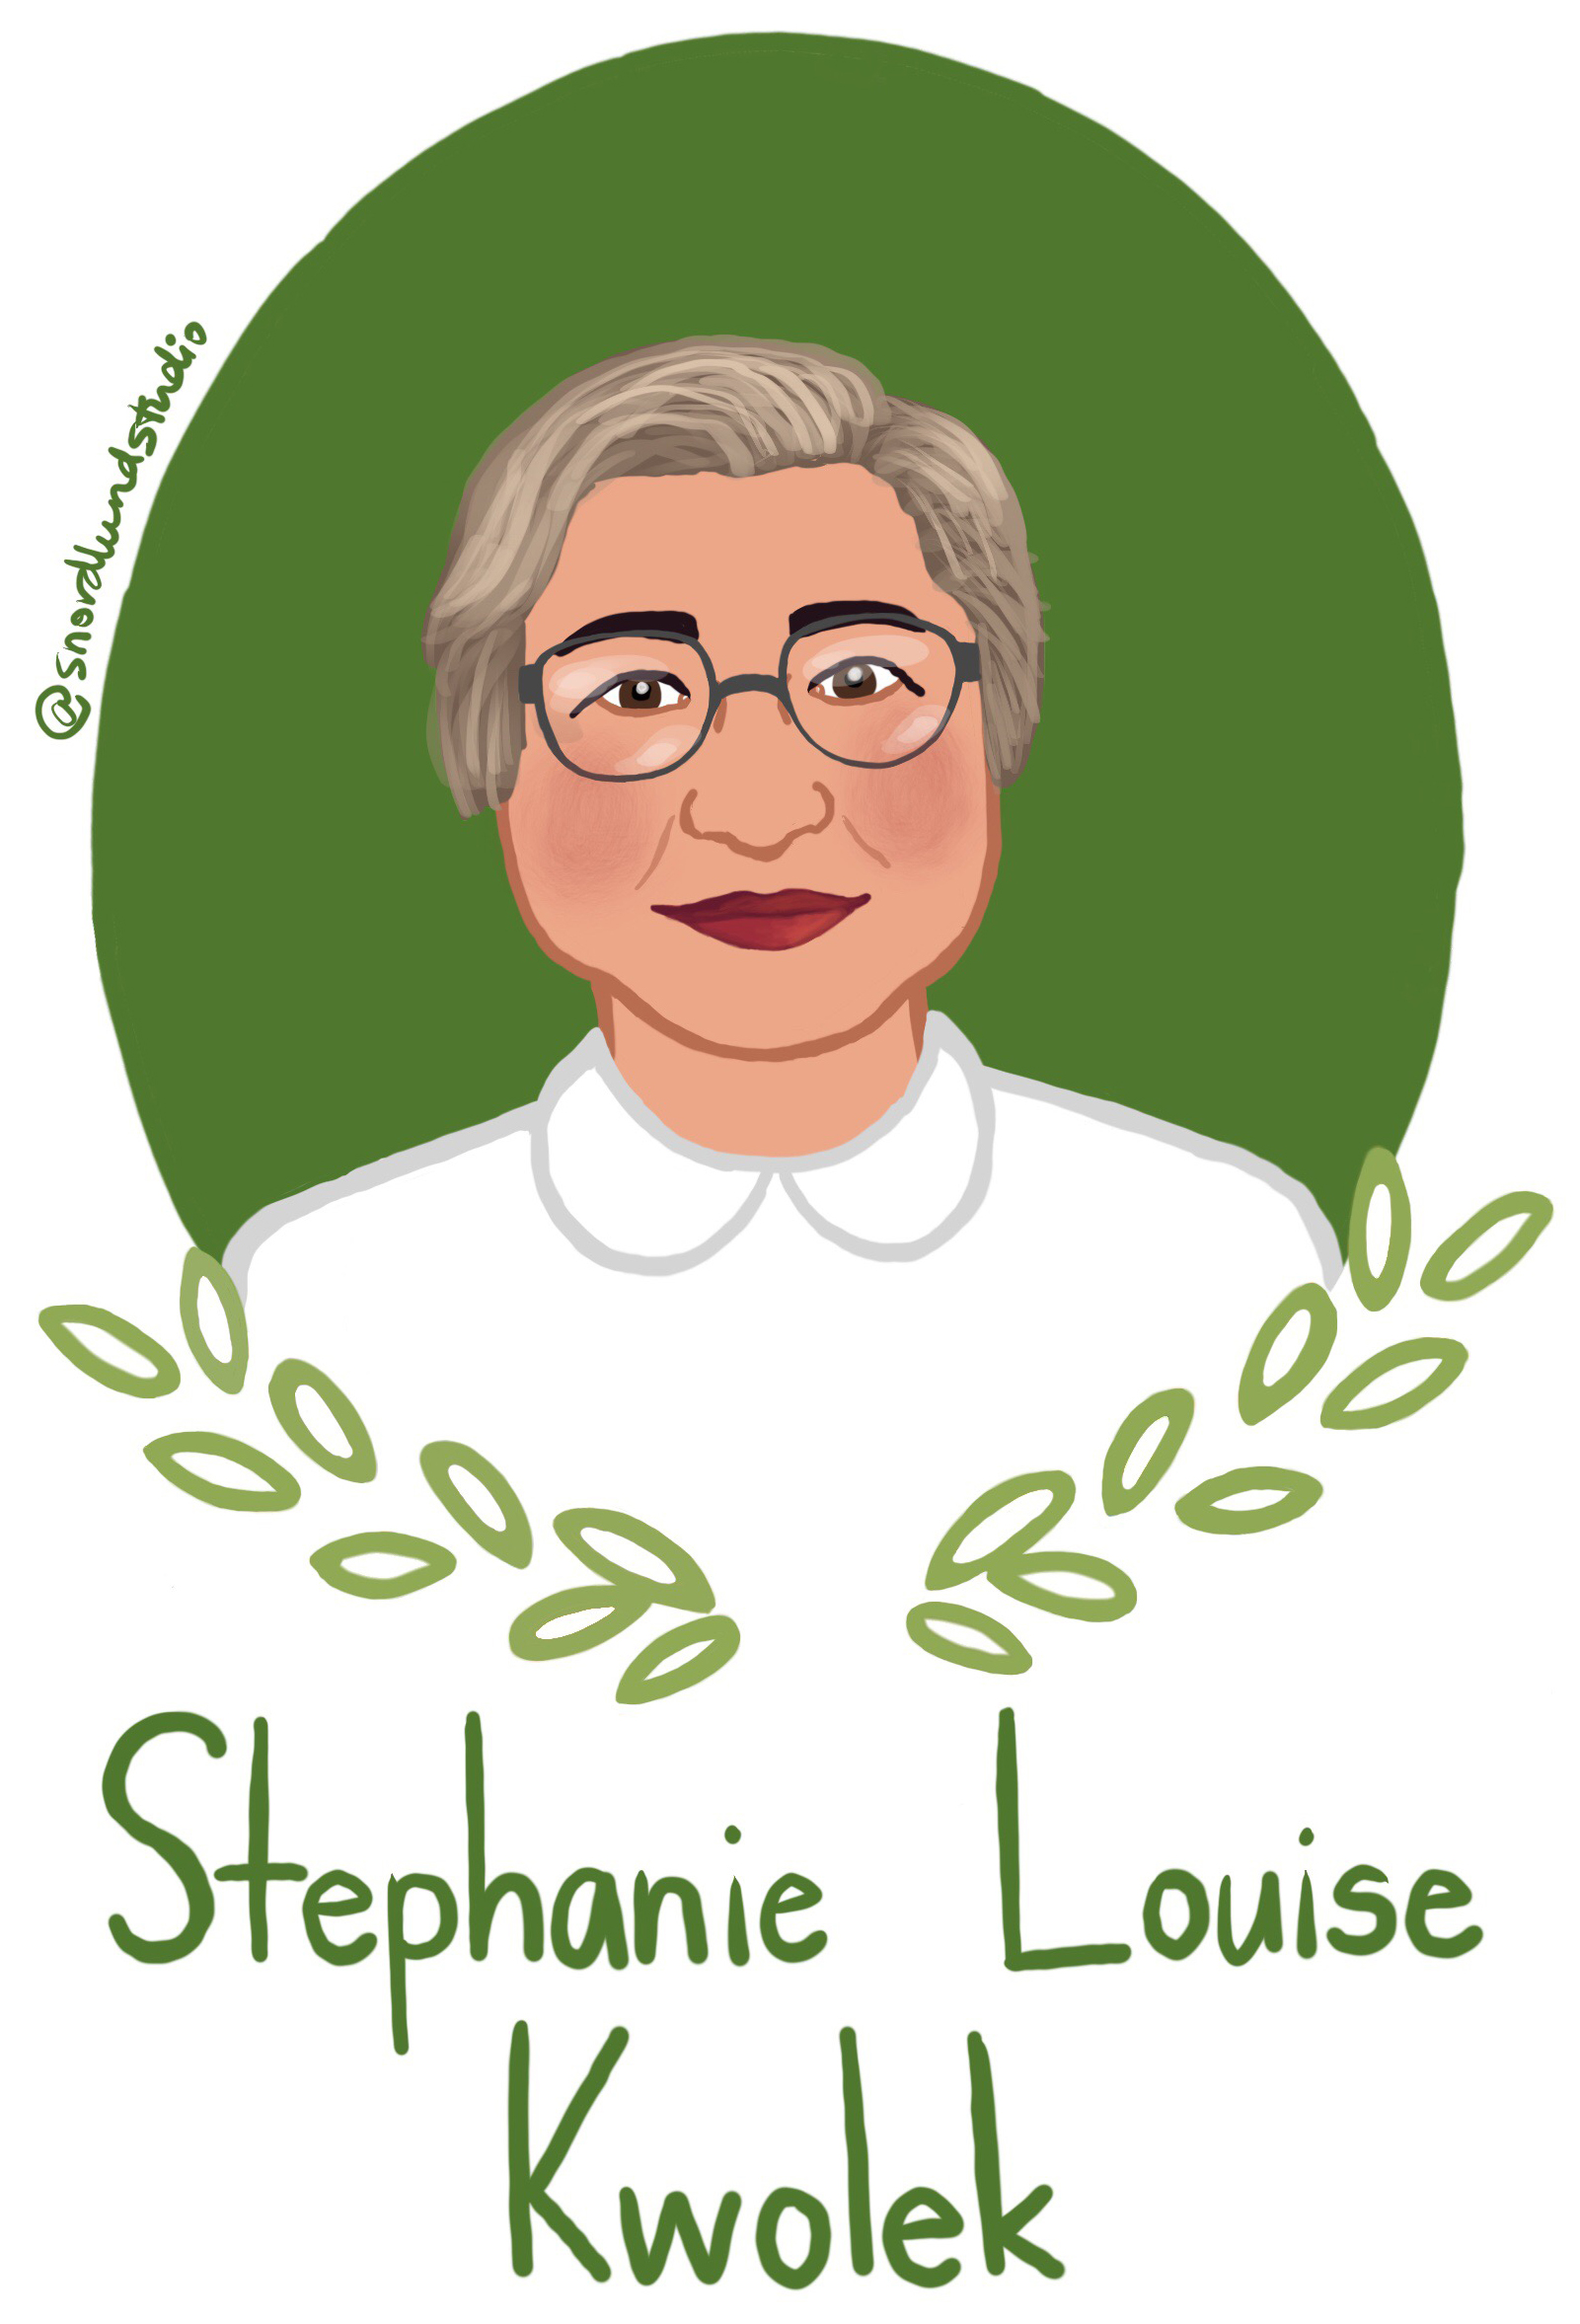 35. Stephanie Louise Kwolek - Stephanie Louise Kwolek (1923-2014) was a chemist and inventor. Kwolek is most well-known for inventing high-strength synergetic fibers aka Kevlar. She was the fourth woman added to the National Inventors Hall of Fame.